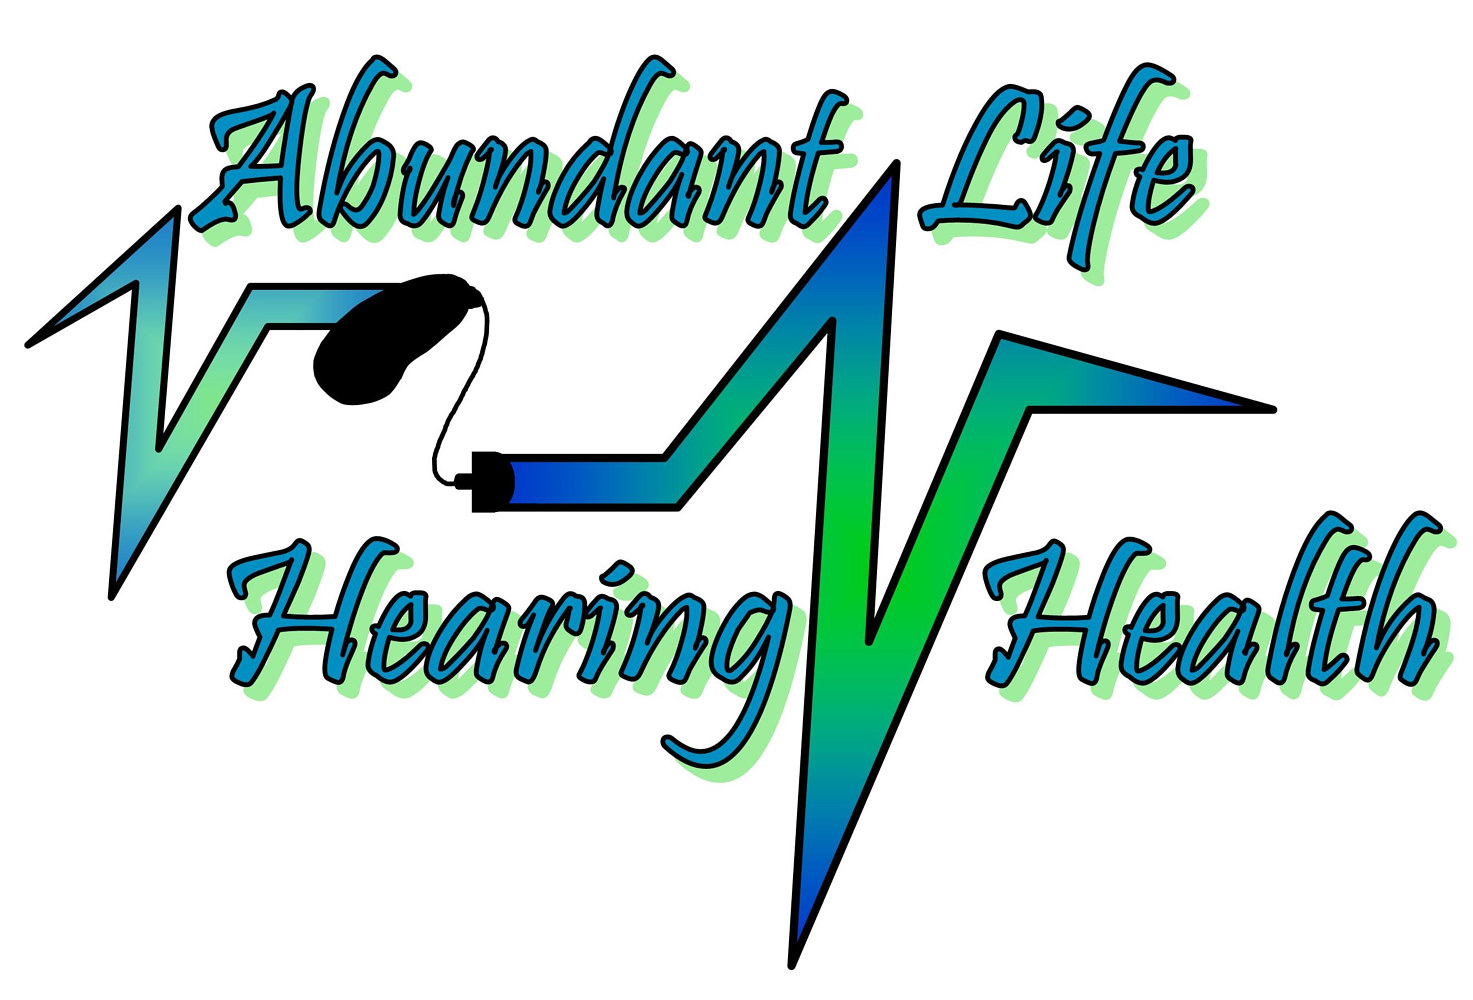 2016 ALHH LOGO Designed by David by Jan Wirth